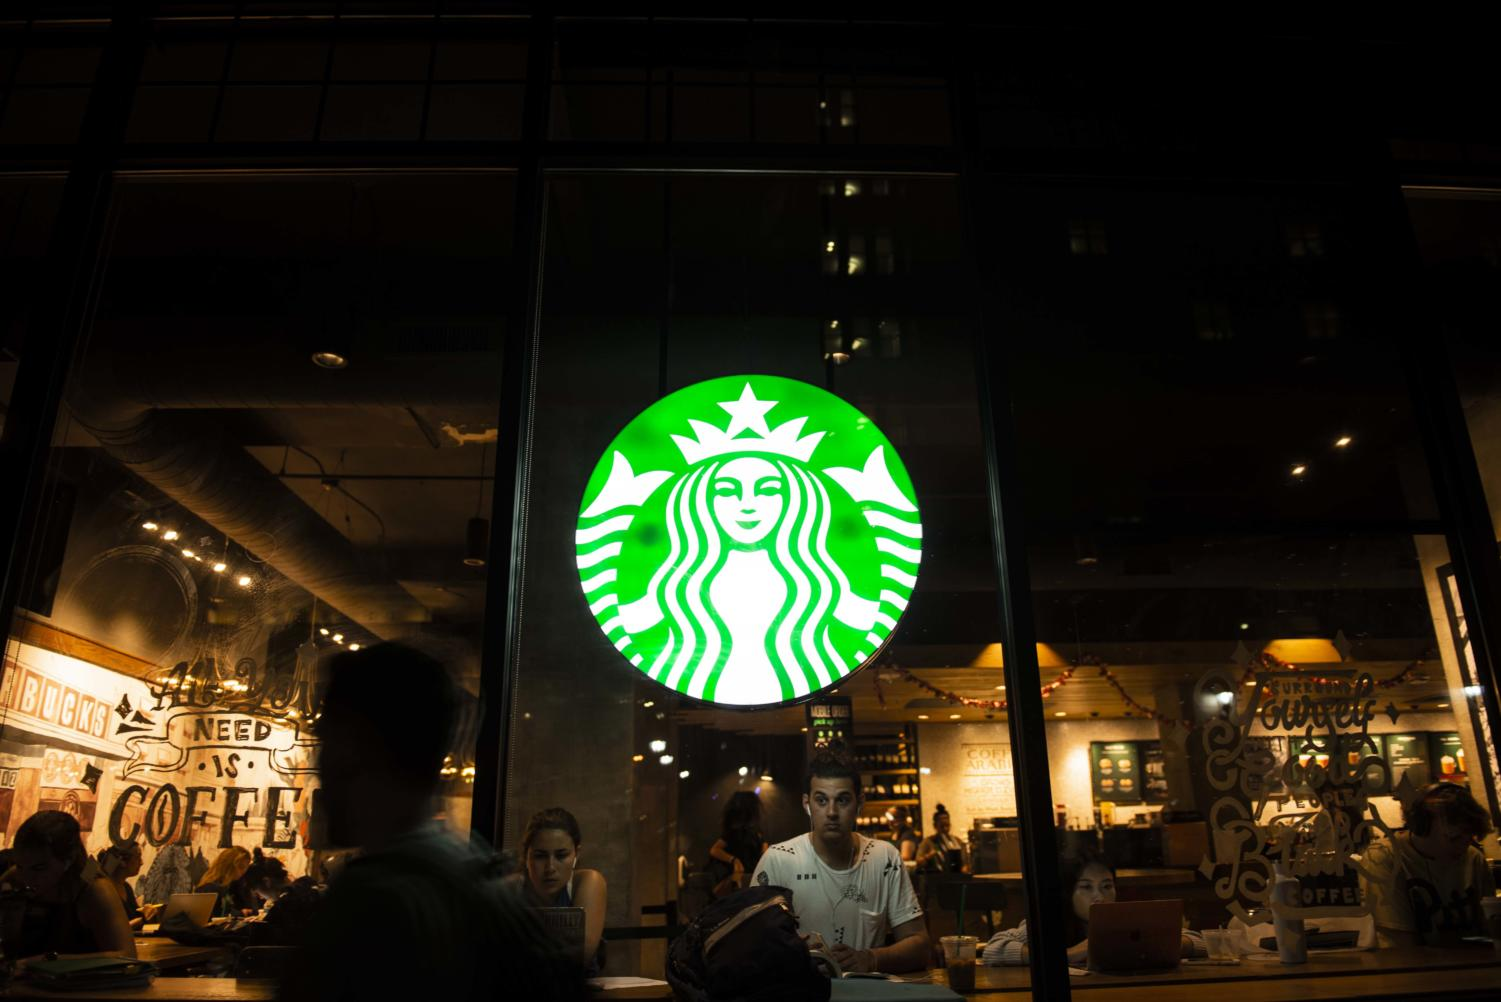 The Fifth Ave. Starbucks on Pitt's campus is Pittsburgh's first location open 24 hours Sunday through Thursday.